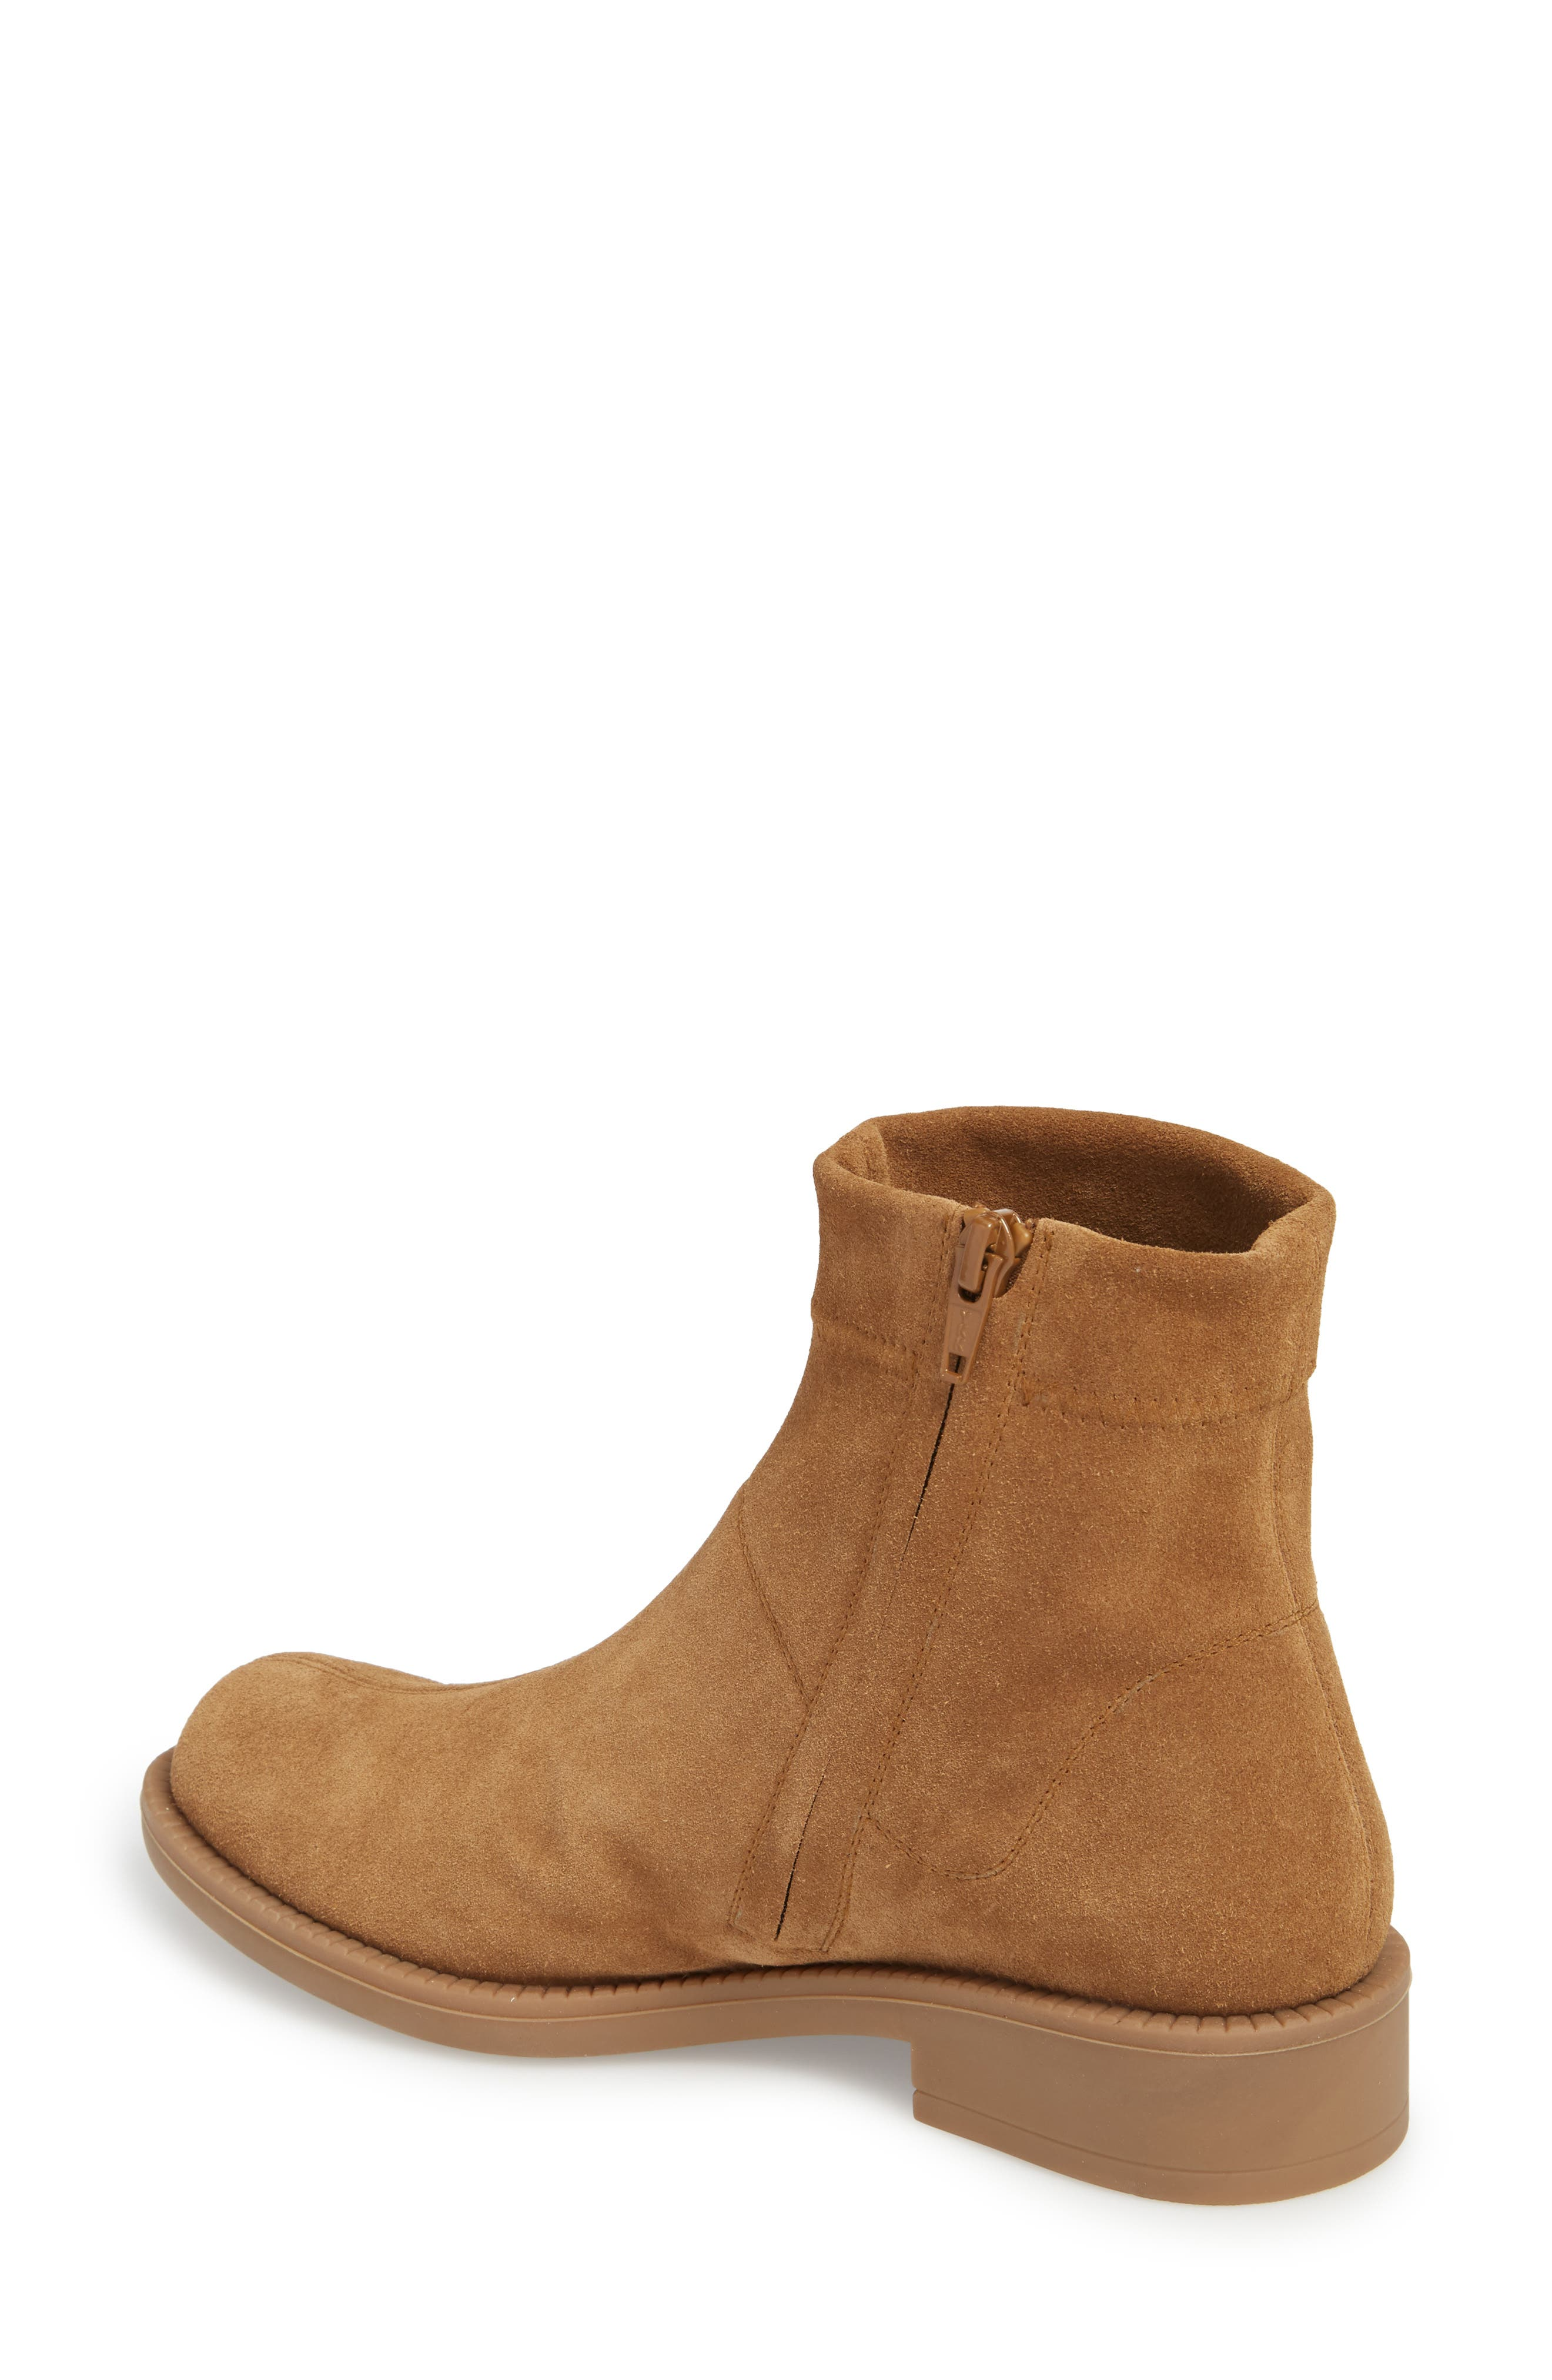 Kana Low Bootie,                             Alternate thumbnail 2, color,                             TOBACCO STRETCH  SUEDE